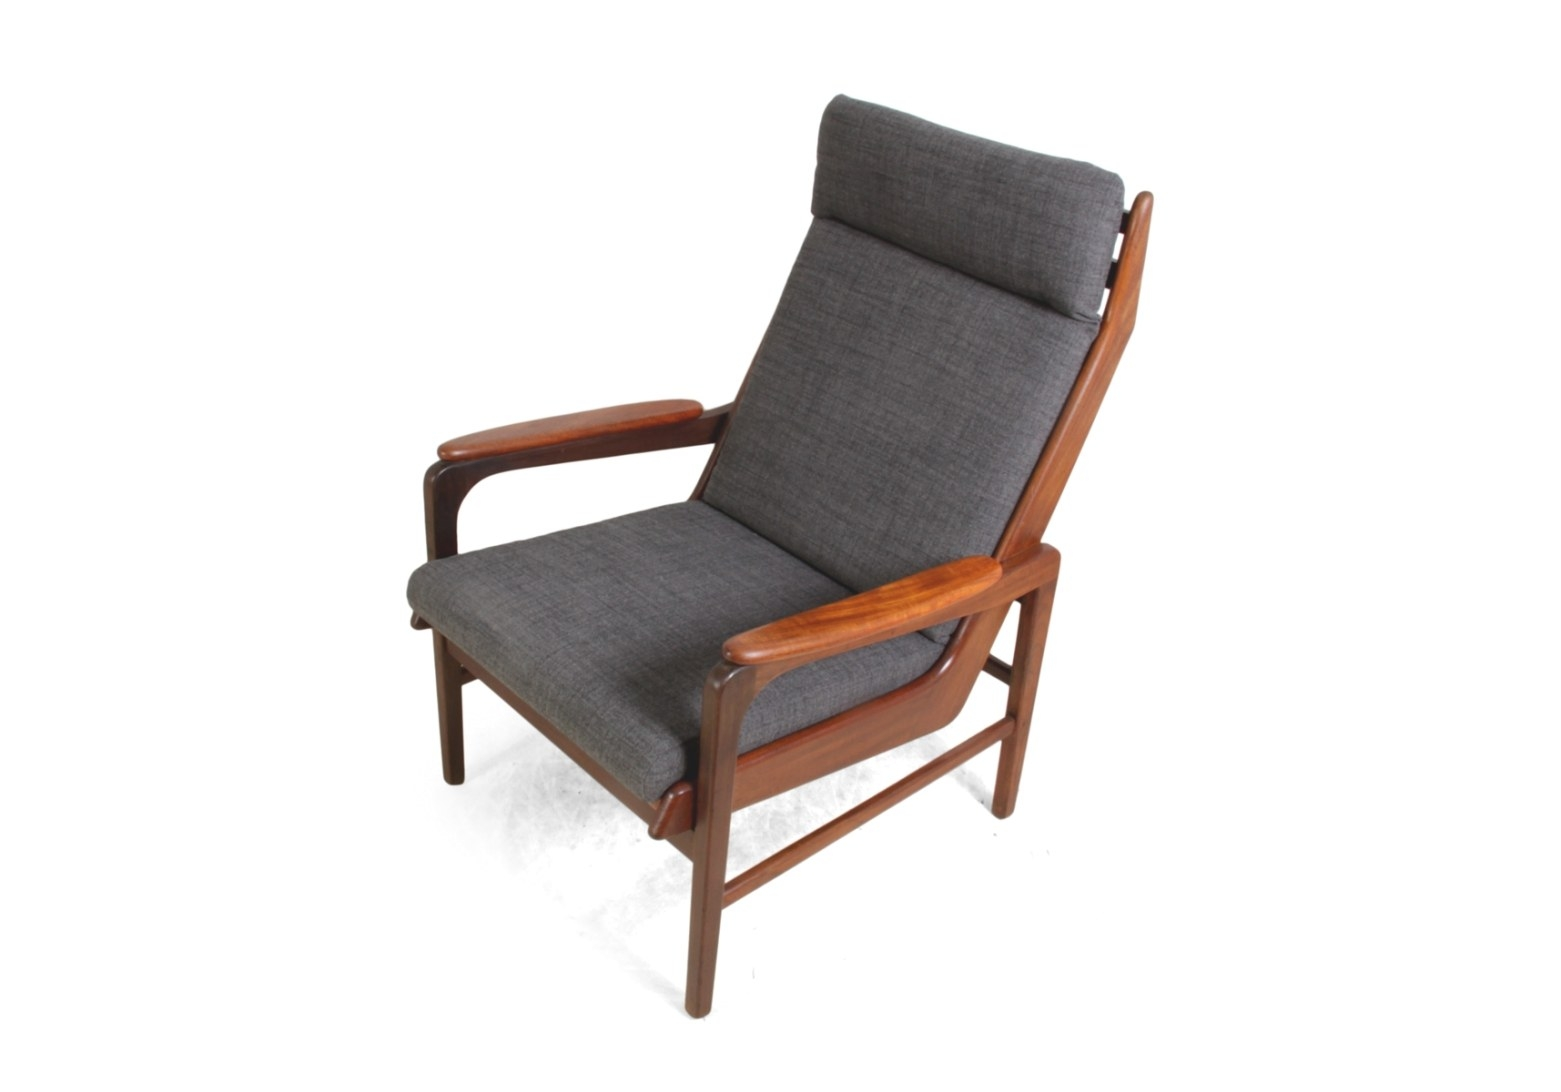 Mid Century Teak Lounge Chair | The Furniture Rooms in Mid Century Lounge Chair